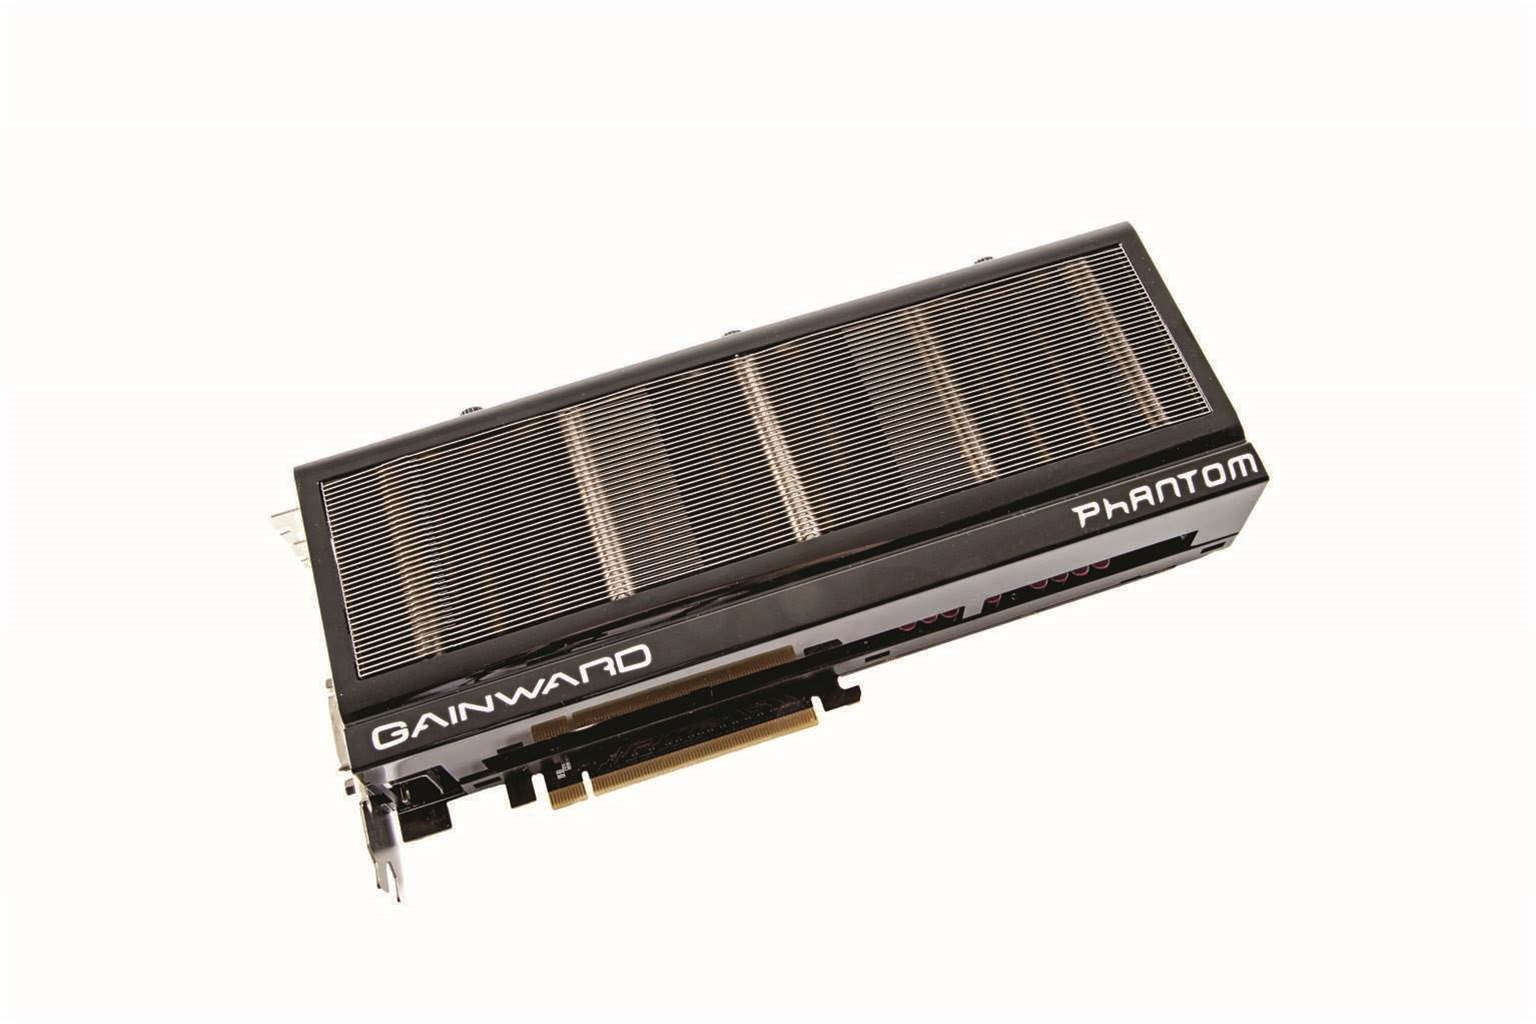 Review: Gainward Phantom GeForce GTX 770